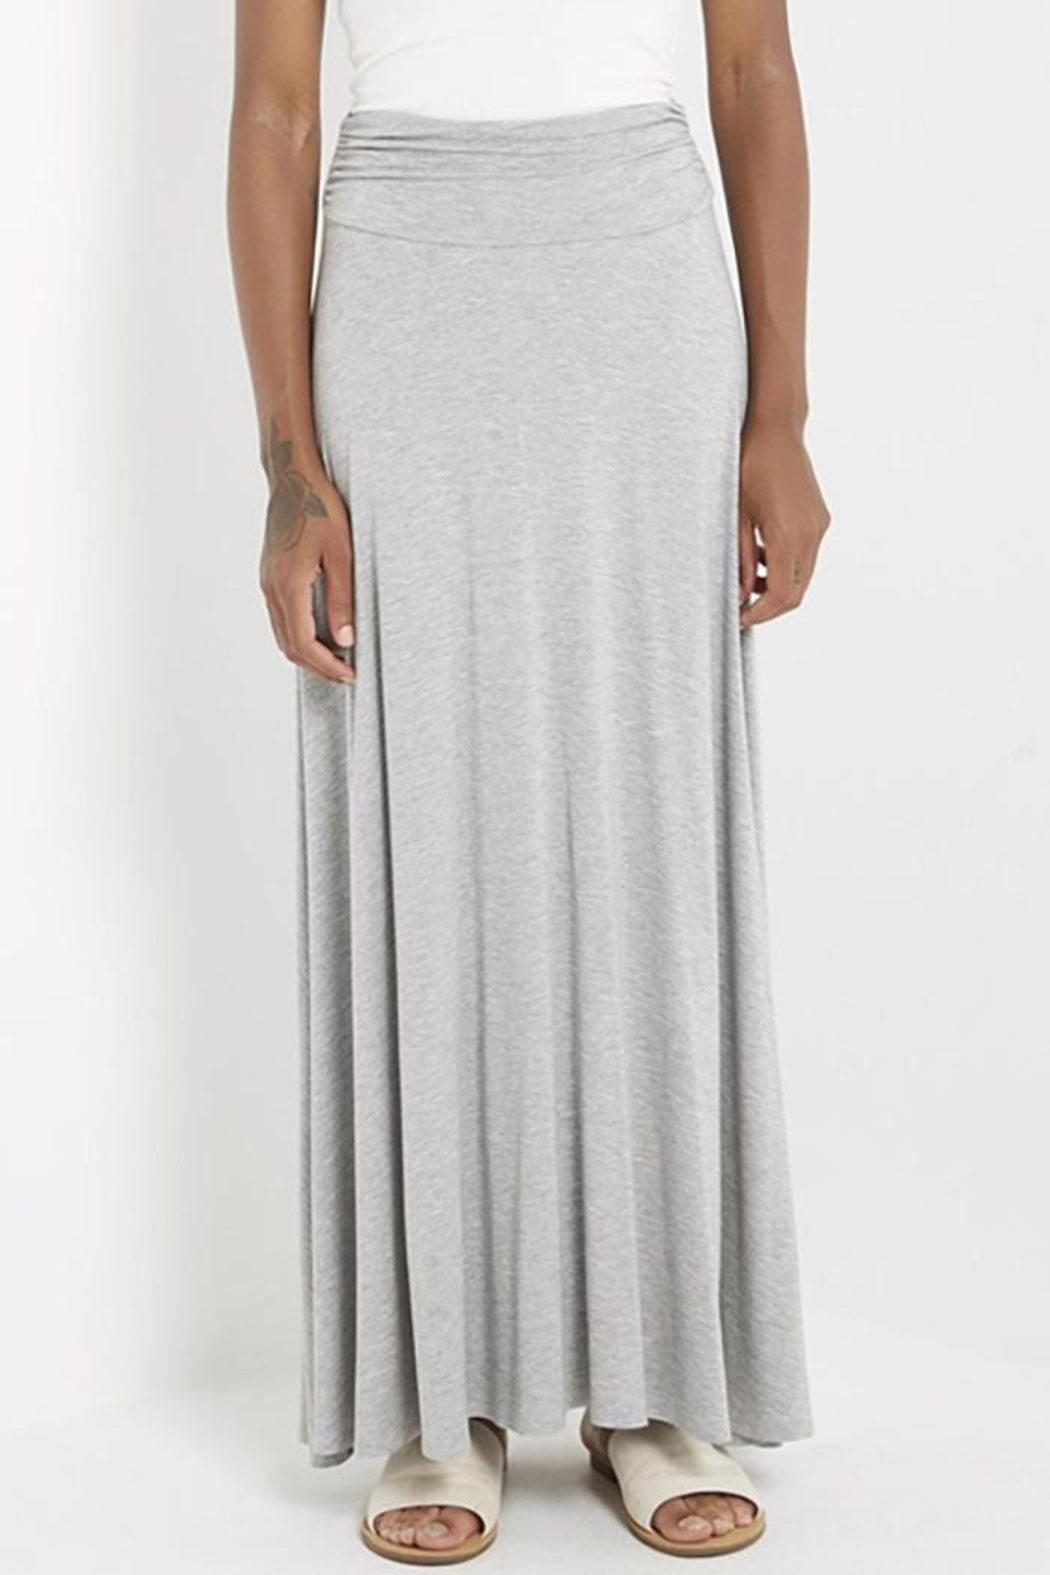 MaiTai Stretch Knit Maxi-Skirt - Front Cropped Image